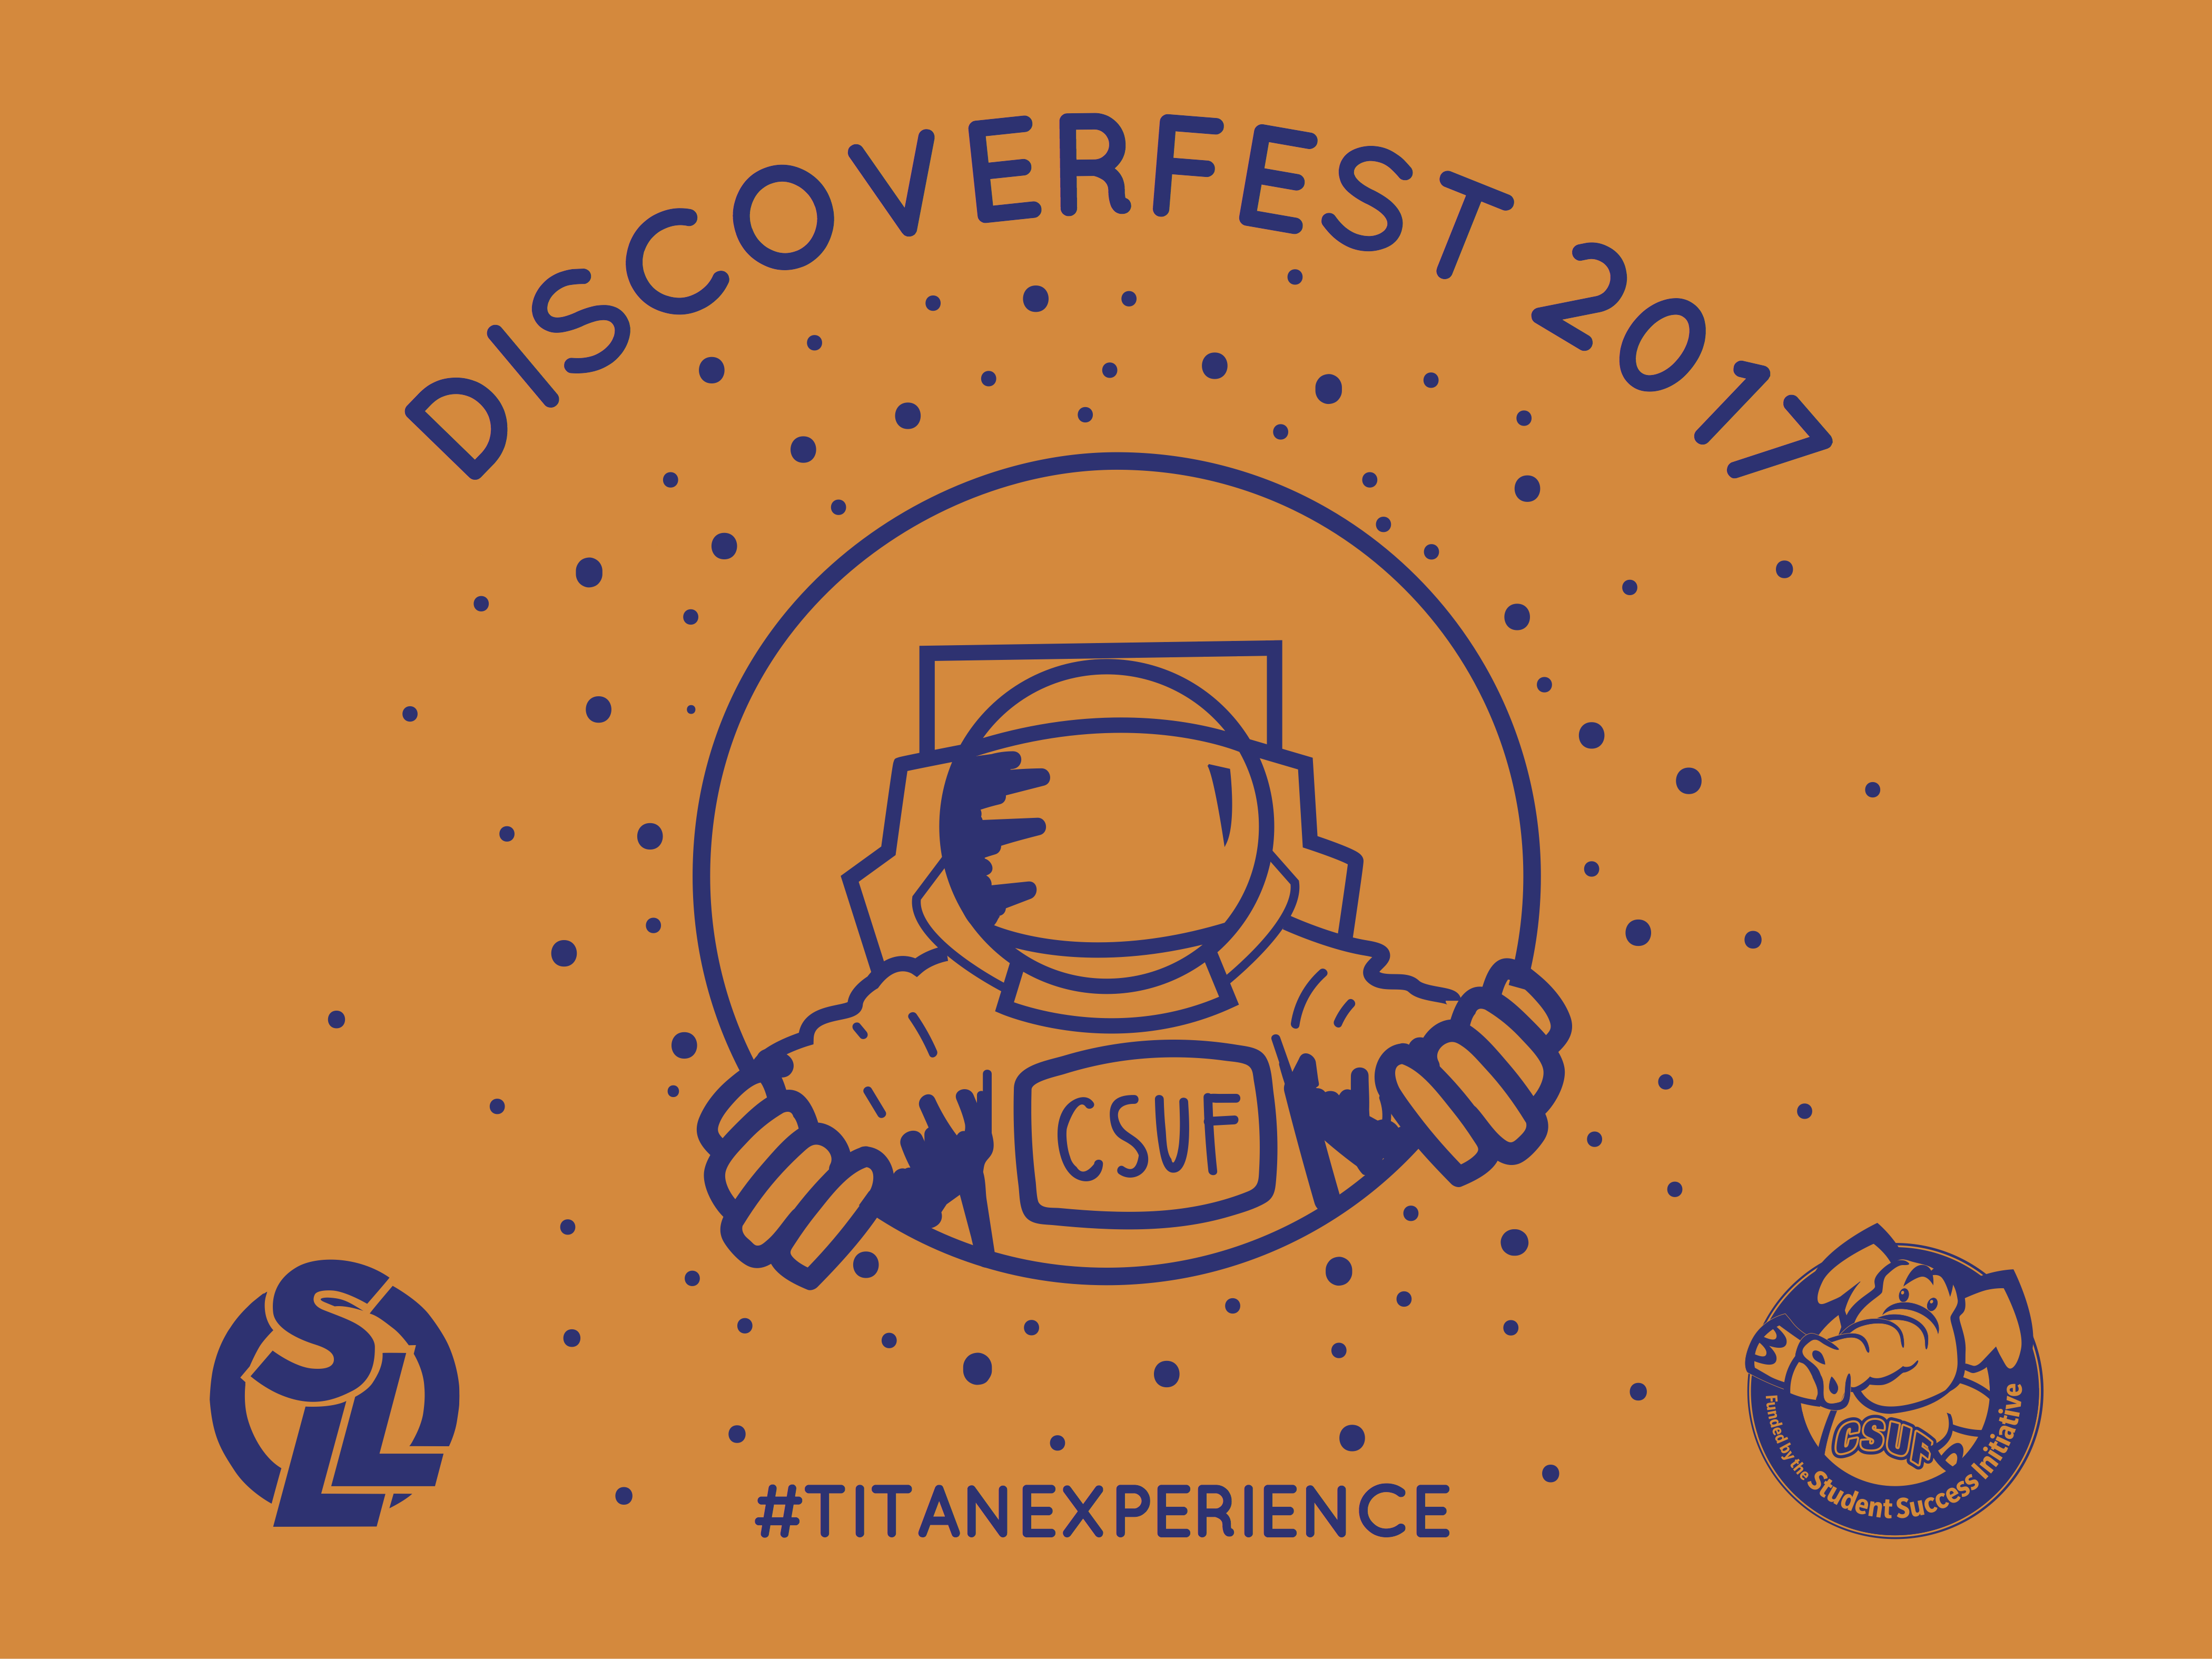 Discoverfest 2017